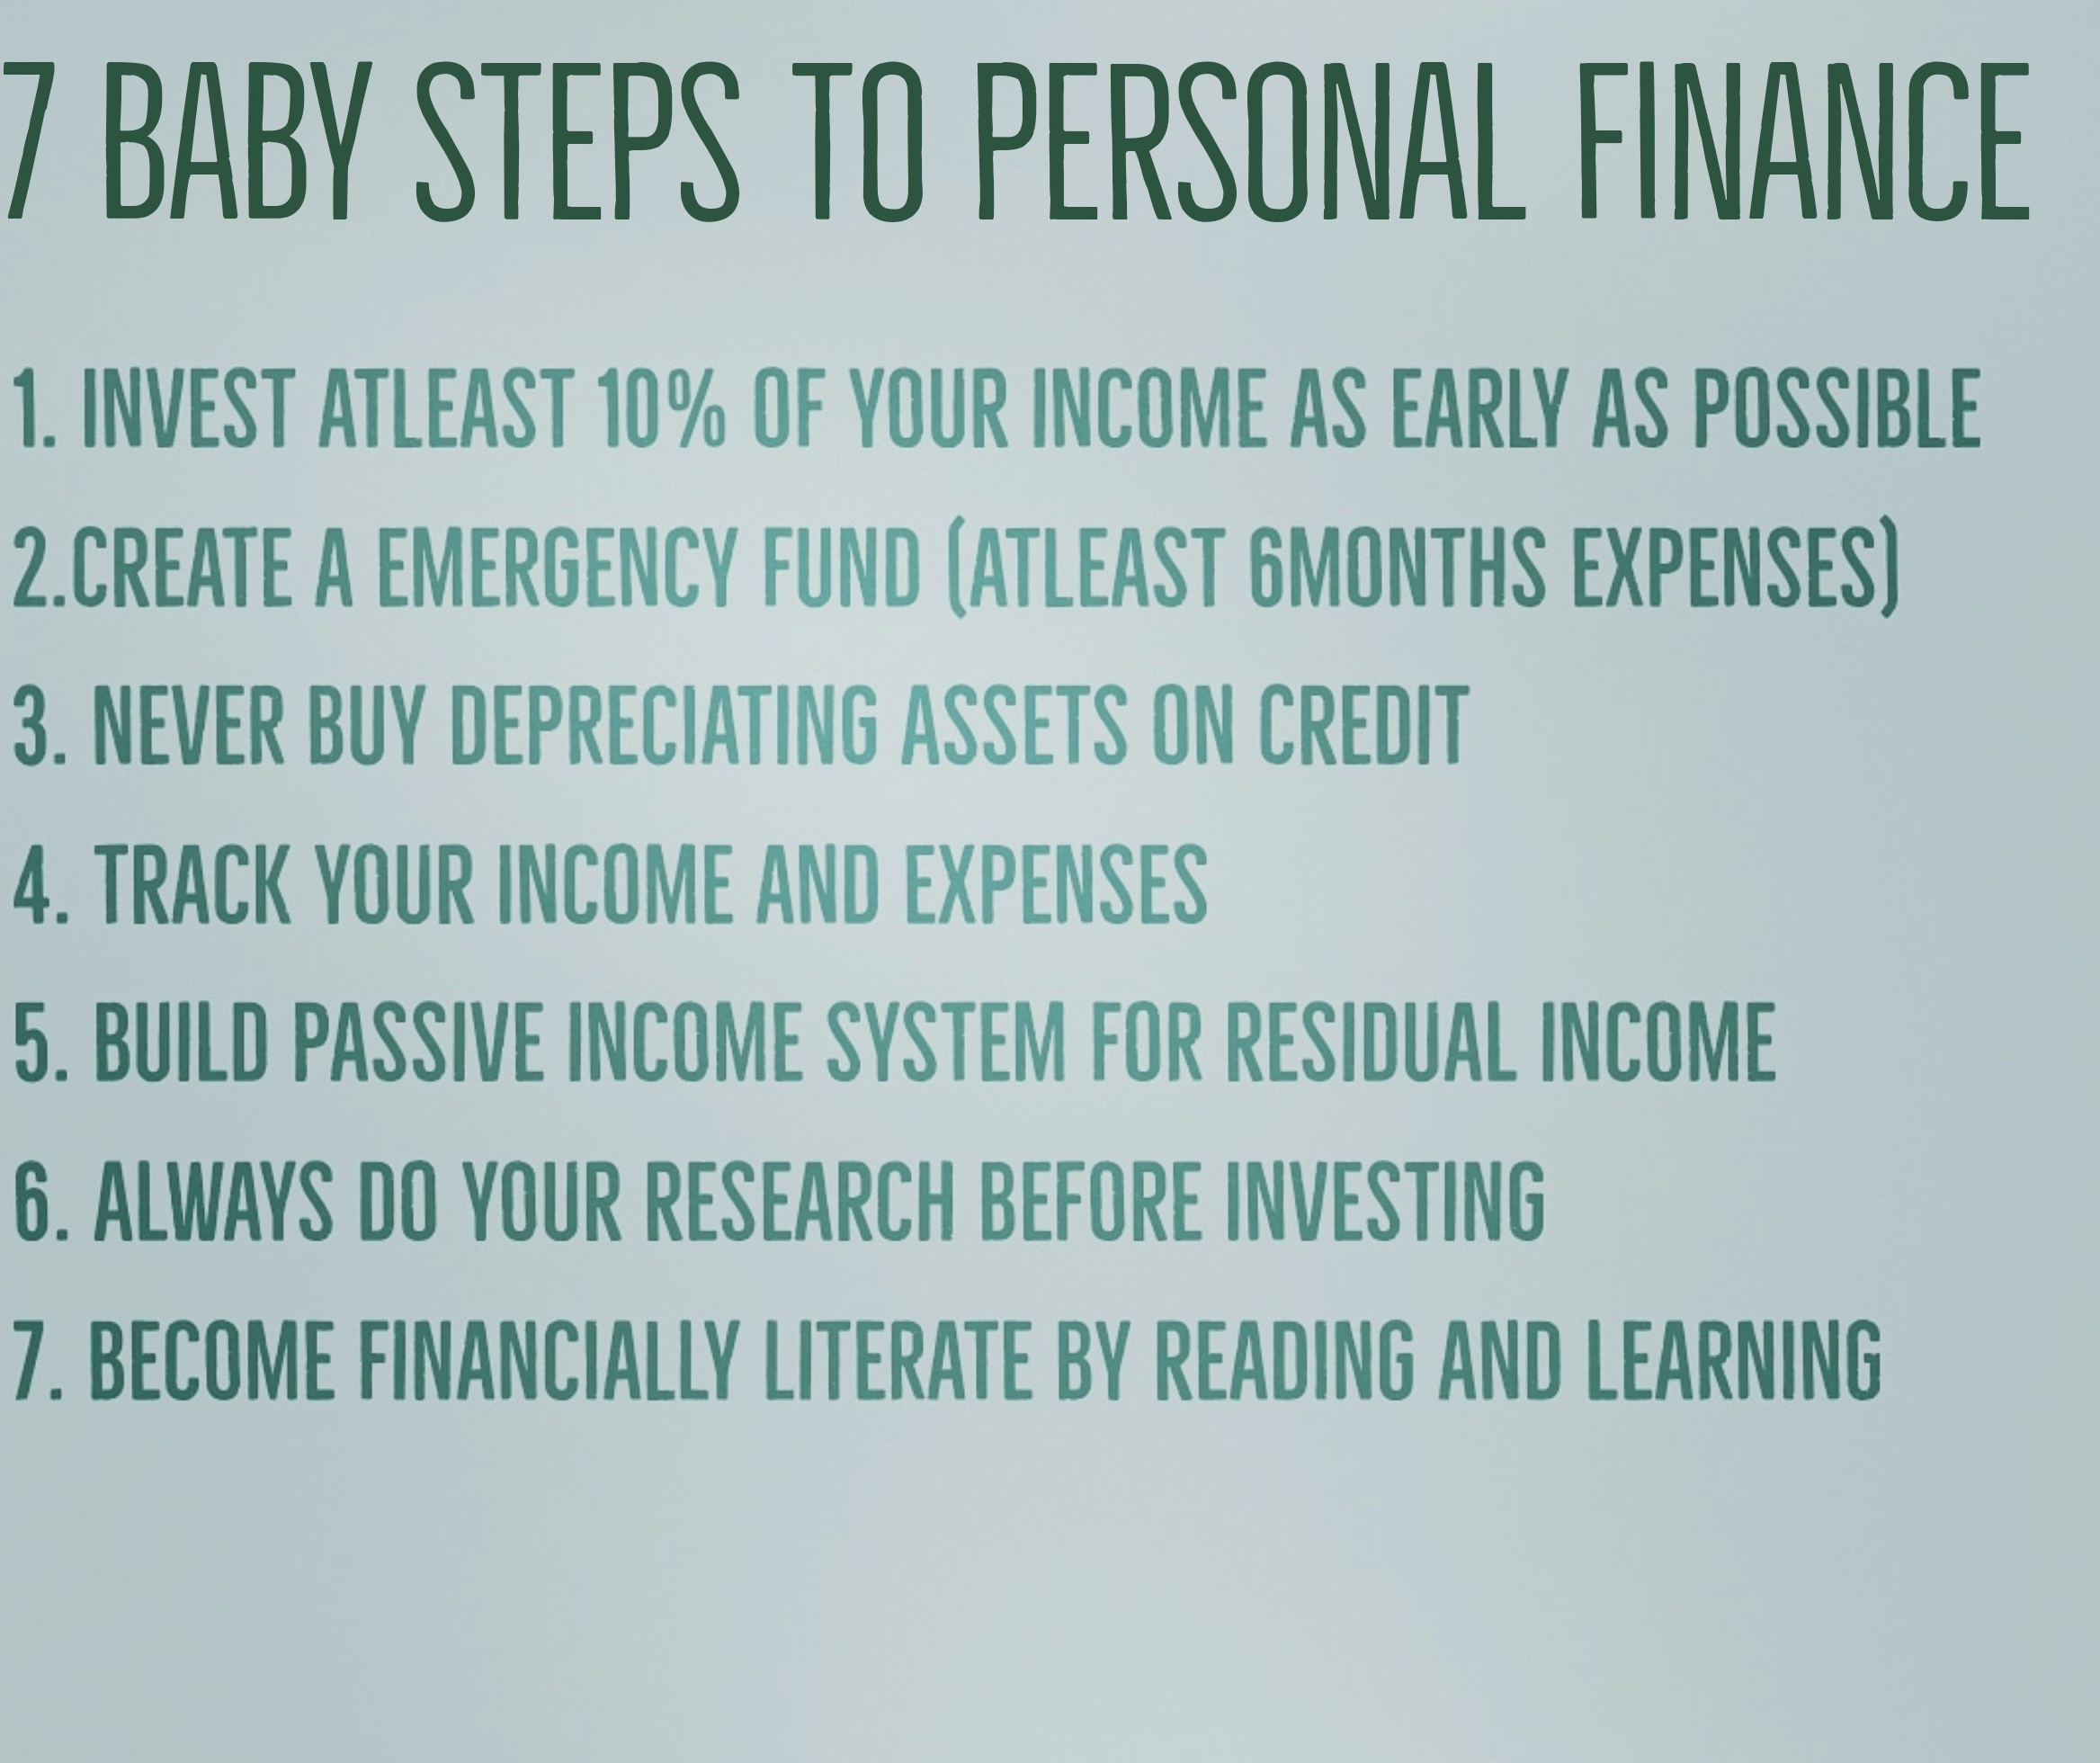 7 baby steps to Personal Finance (It's time you sort out your finance)